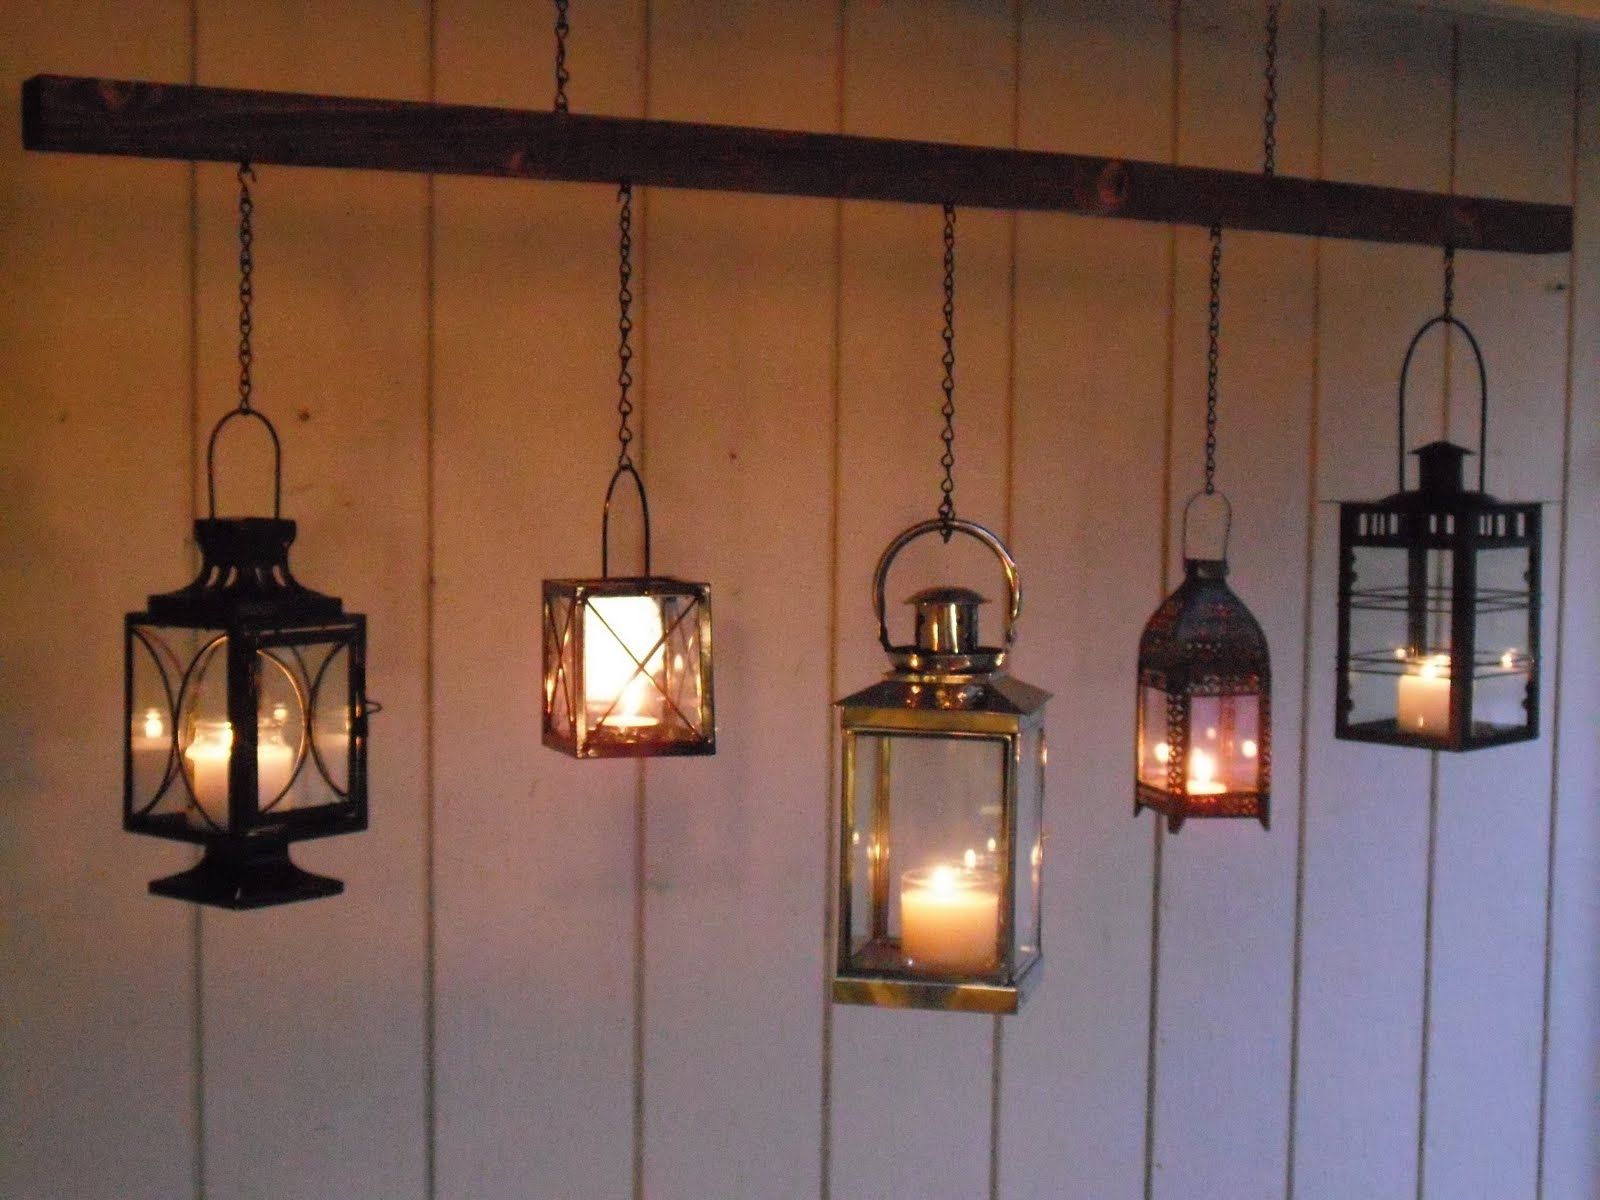 Wedding Decoration Hanging Candle Lanterns – Matt And Jentry Home Design With Regard To Outdoor Hanging Lanterns (View 15 of 15)